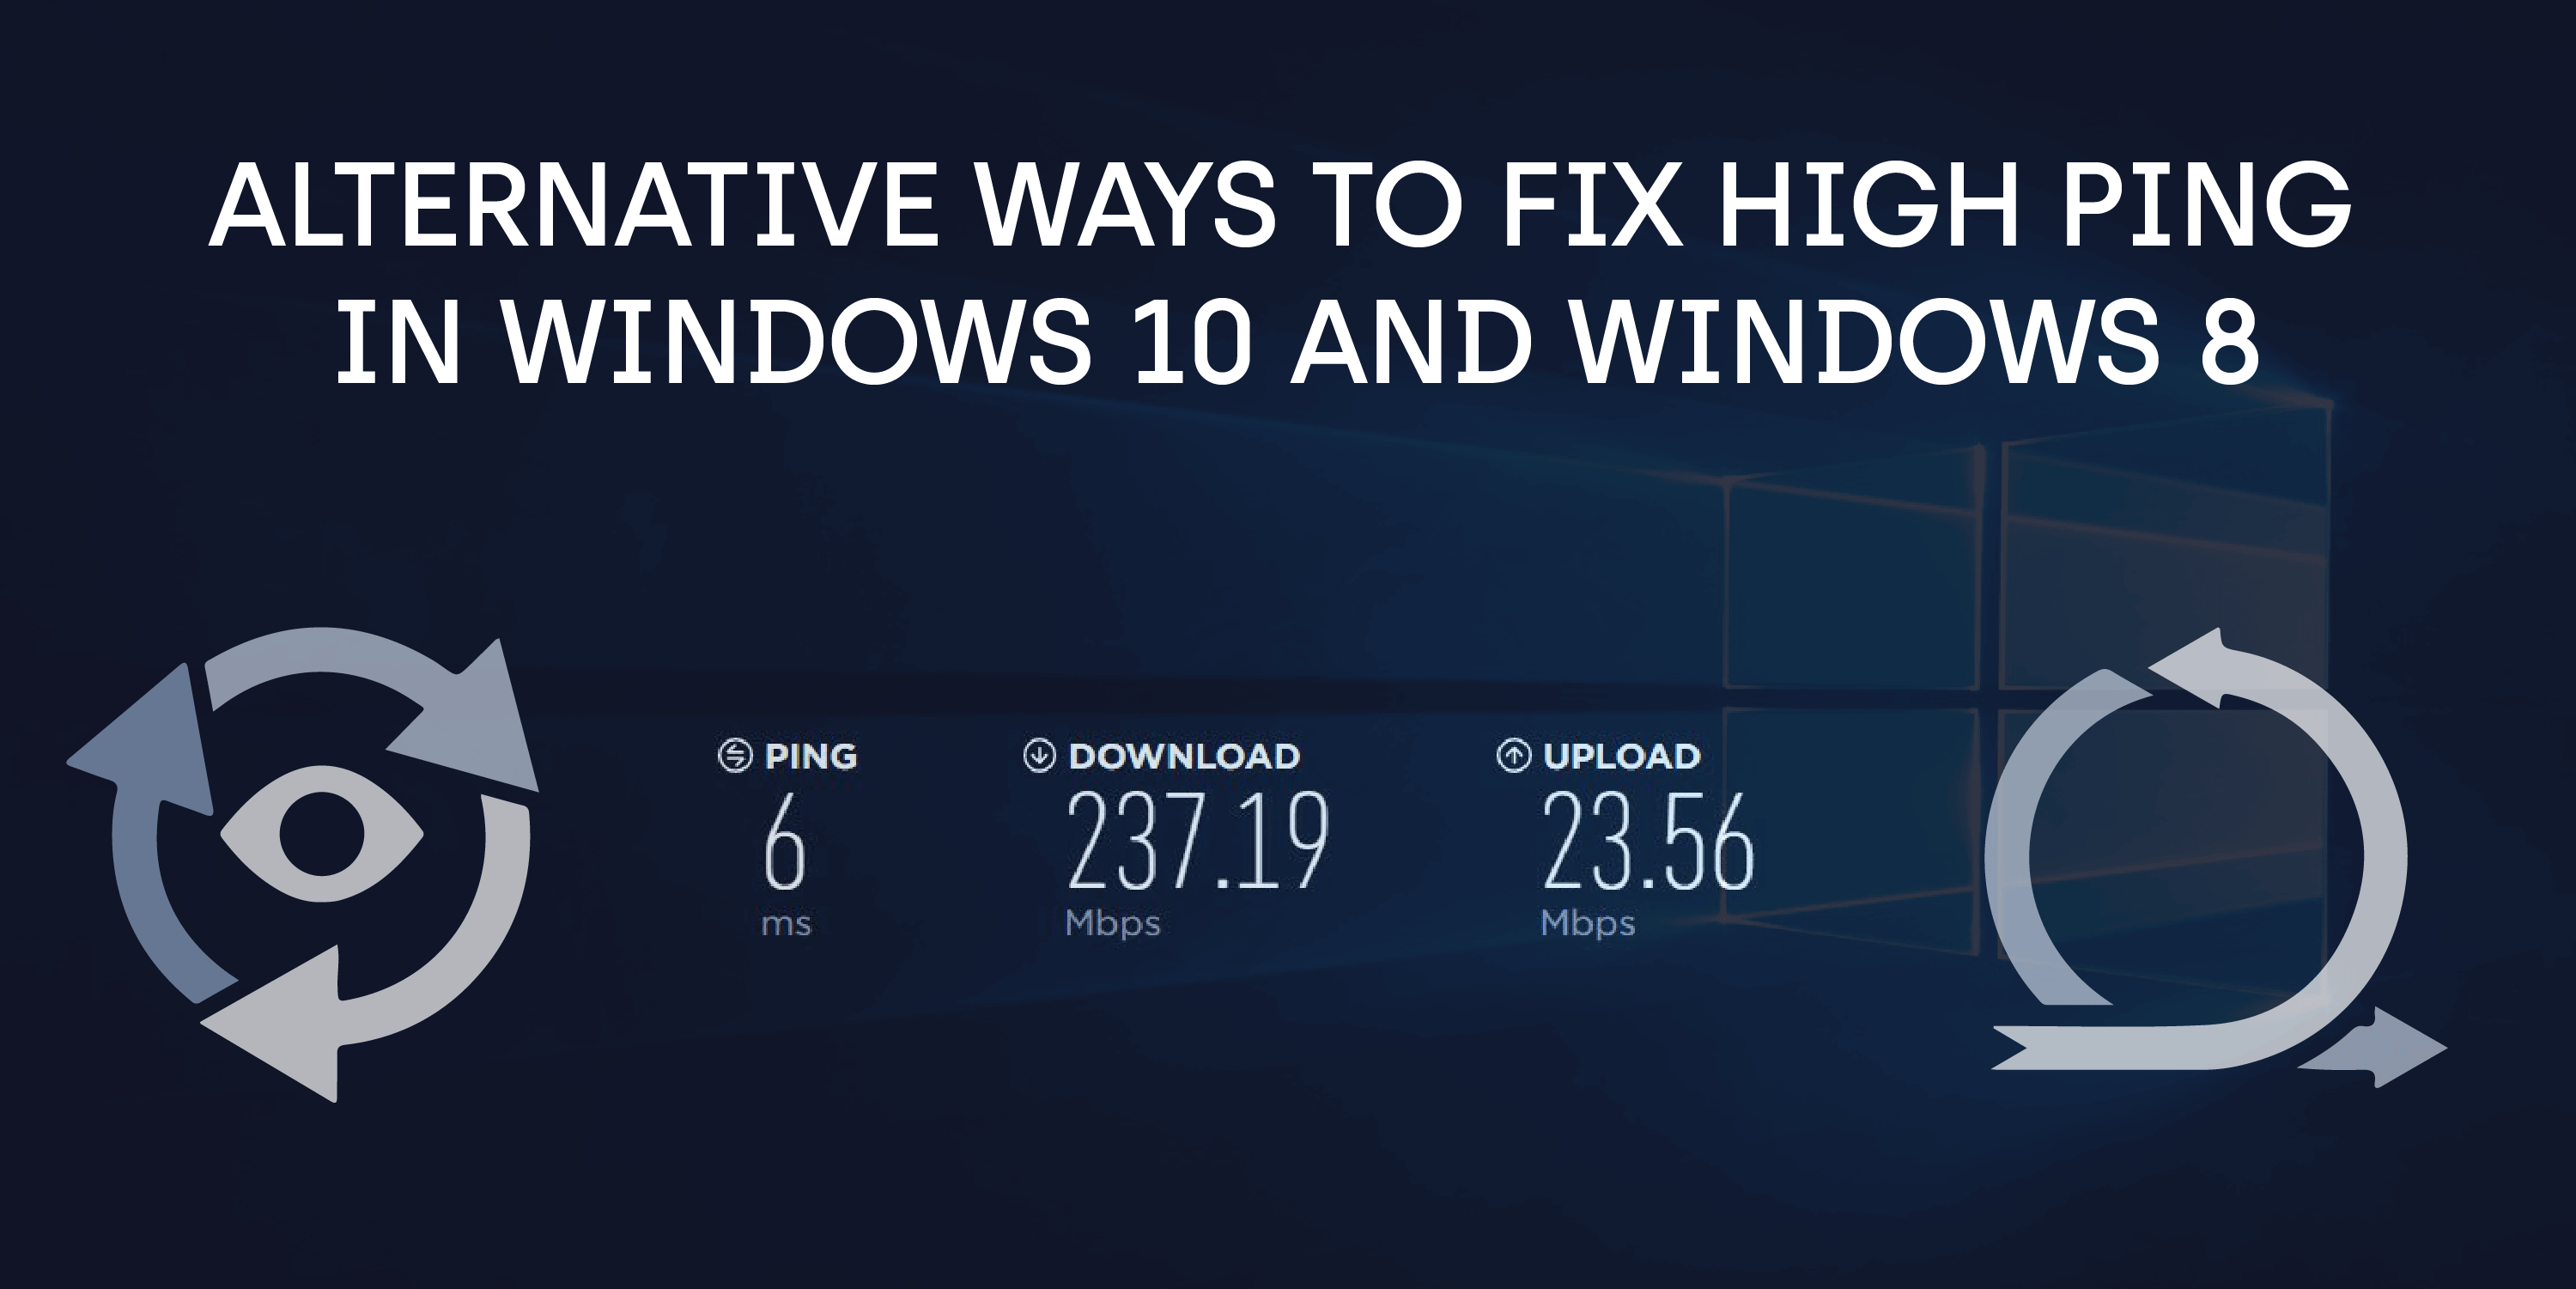 ALTERNATIVE WAYS TO FIX HIGH PING IN WINDOWS 10 AND WINDOWS 8